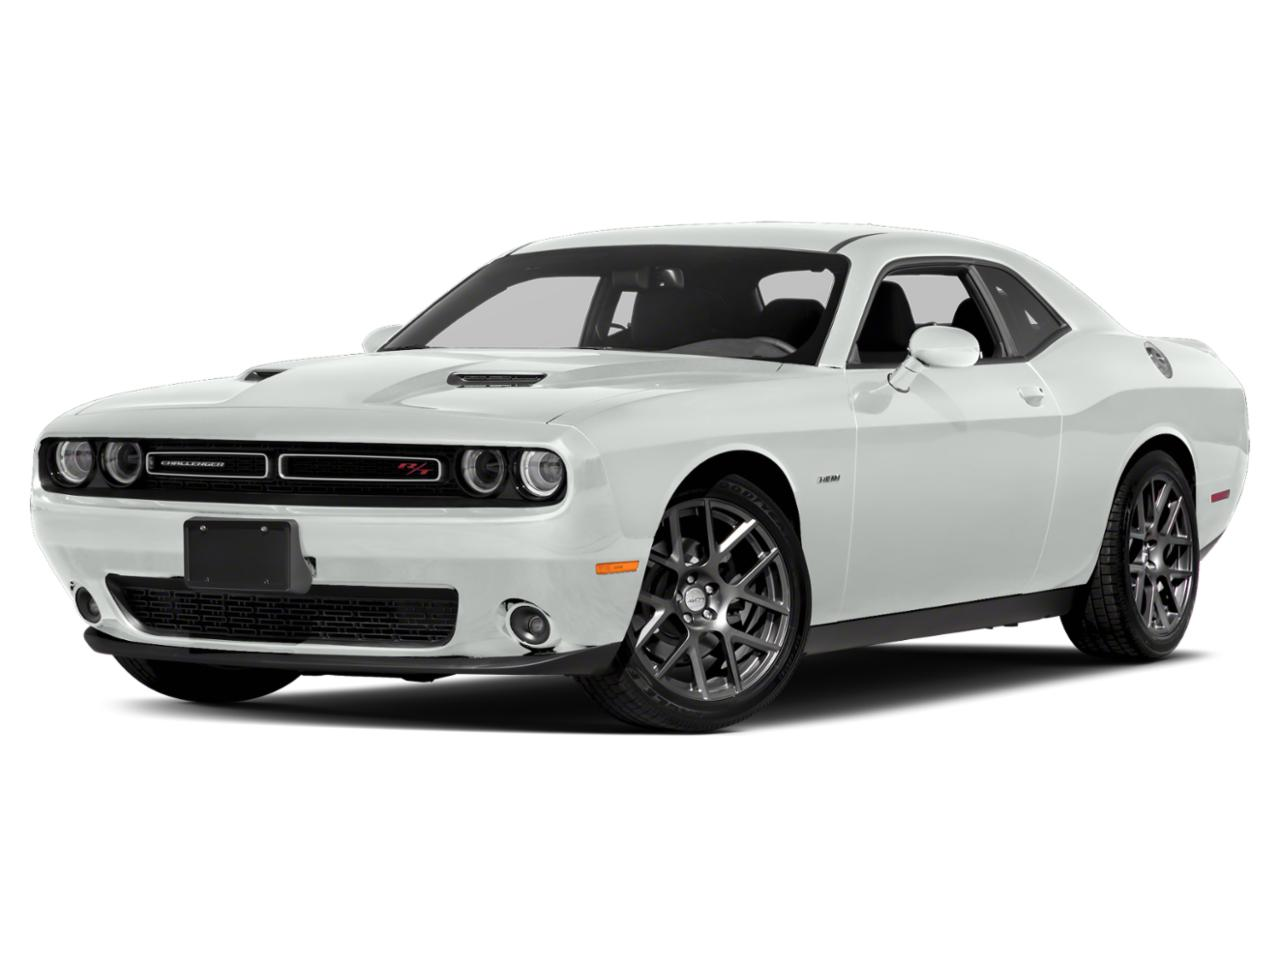 2018 Dodge Challenger Vehicle Photo in Akron, OH 44312